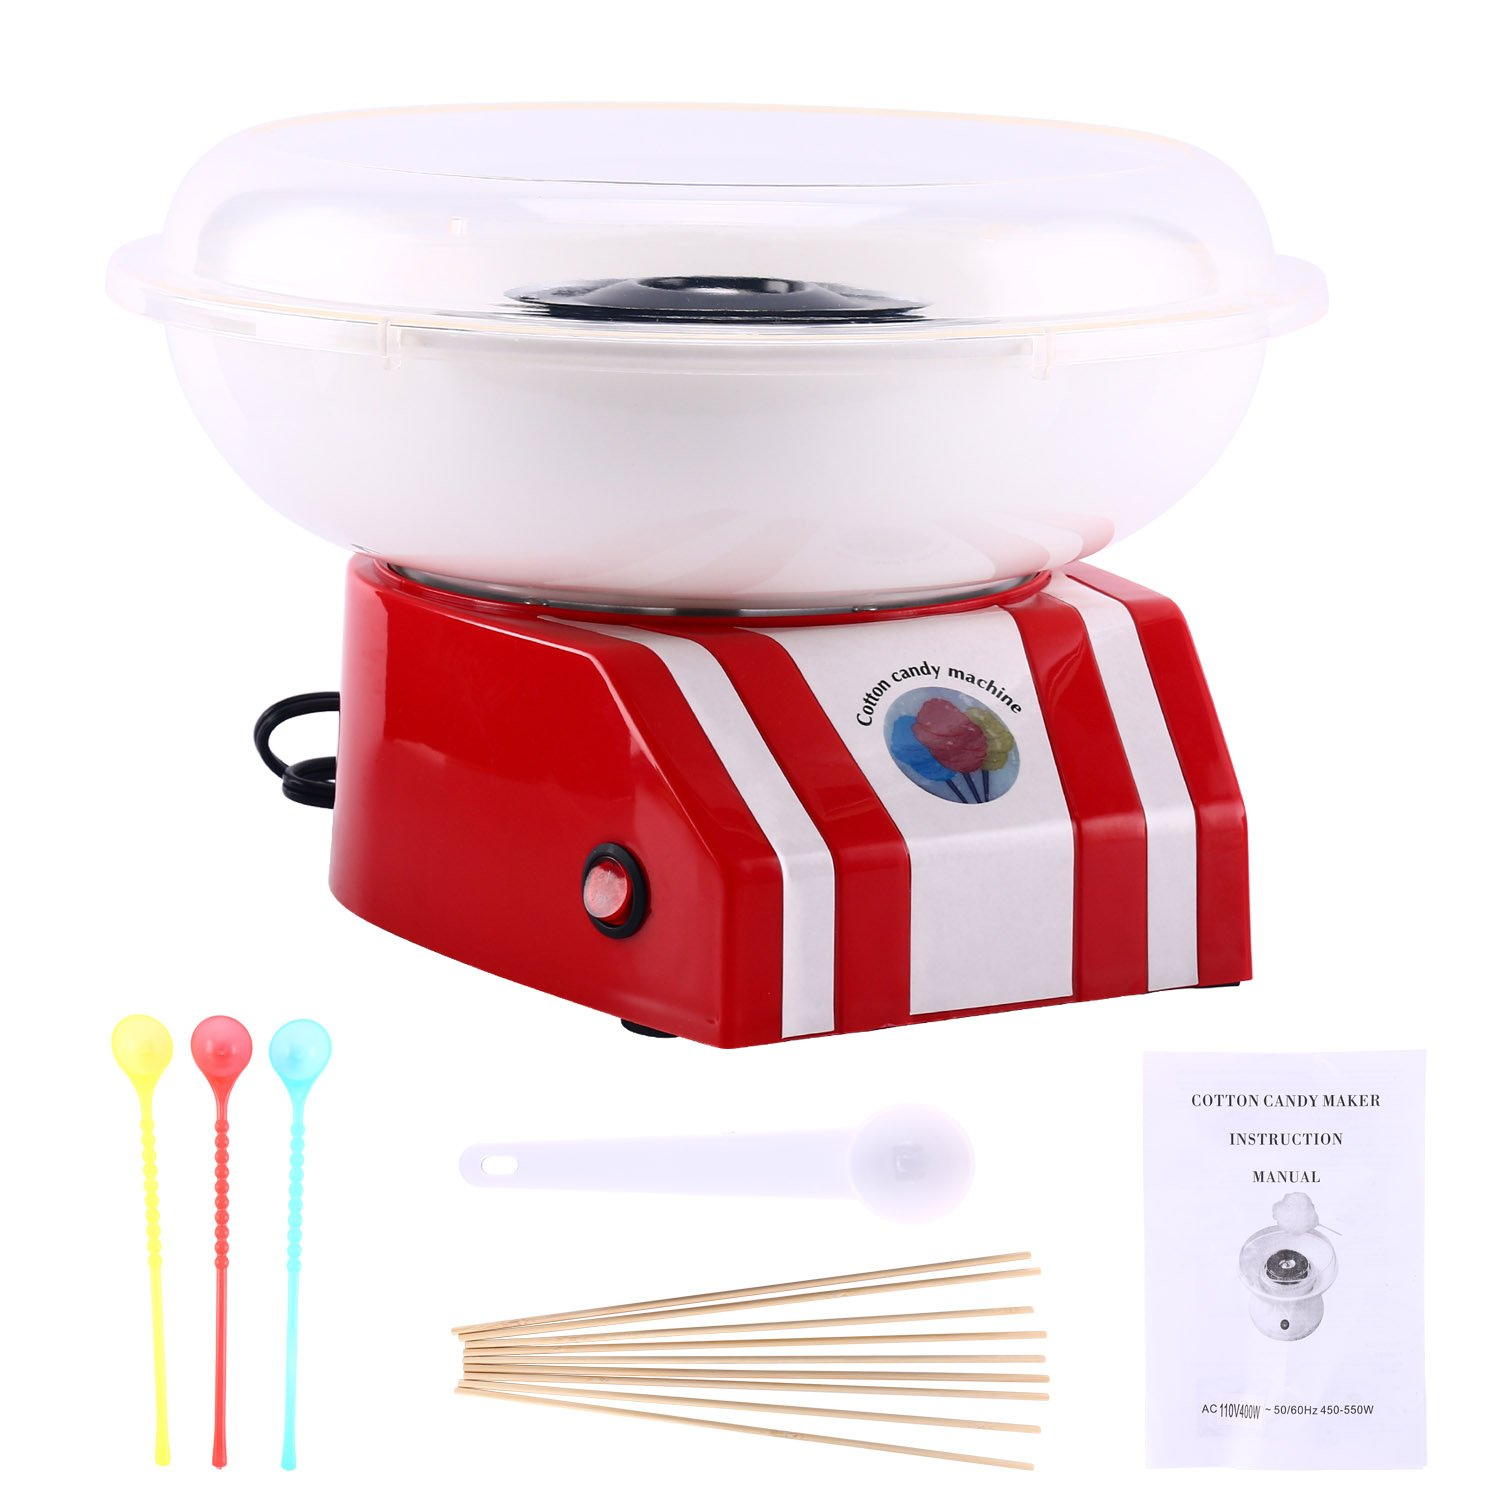 Homend Cotton Candy Machine Bright, Colorful Style- Makes Hard Candy, Sugar Free Candy, Sugar Floss, Homemade Sweets for Birthday Parties